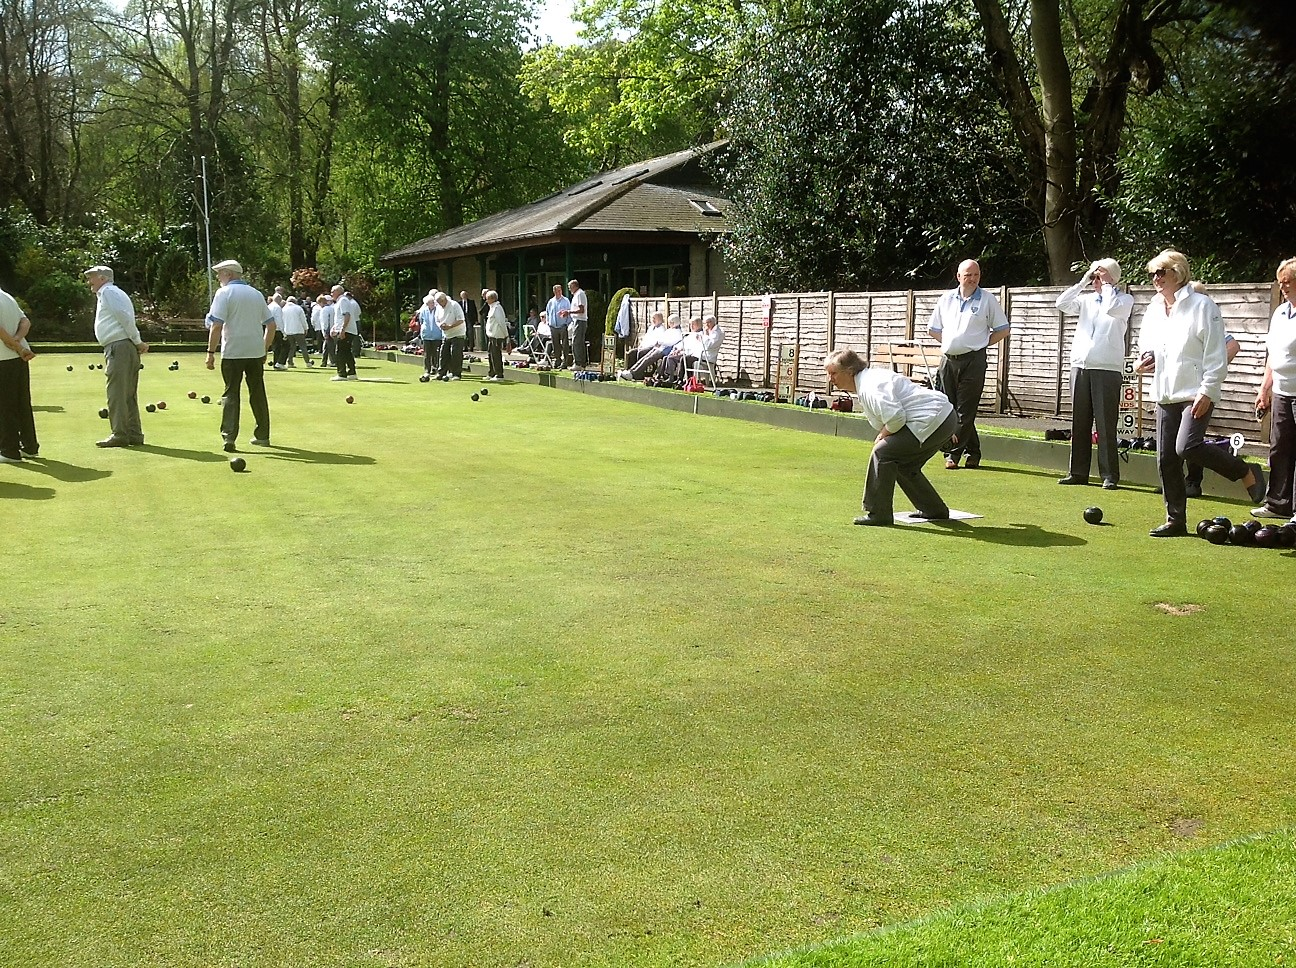 A Crowded Green